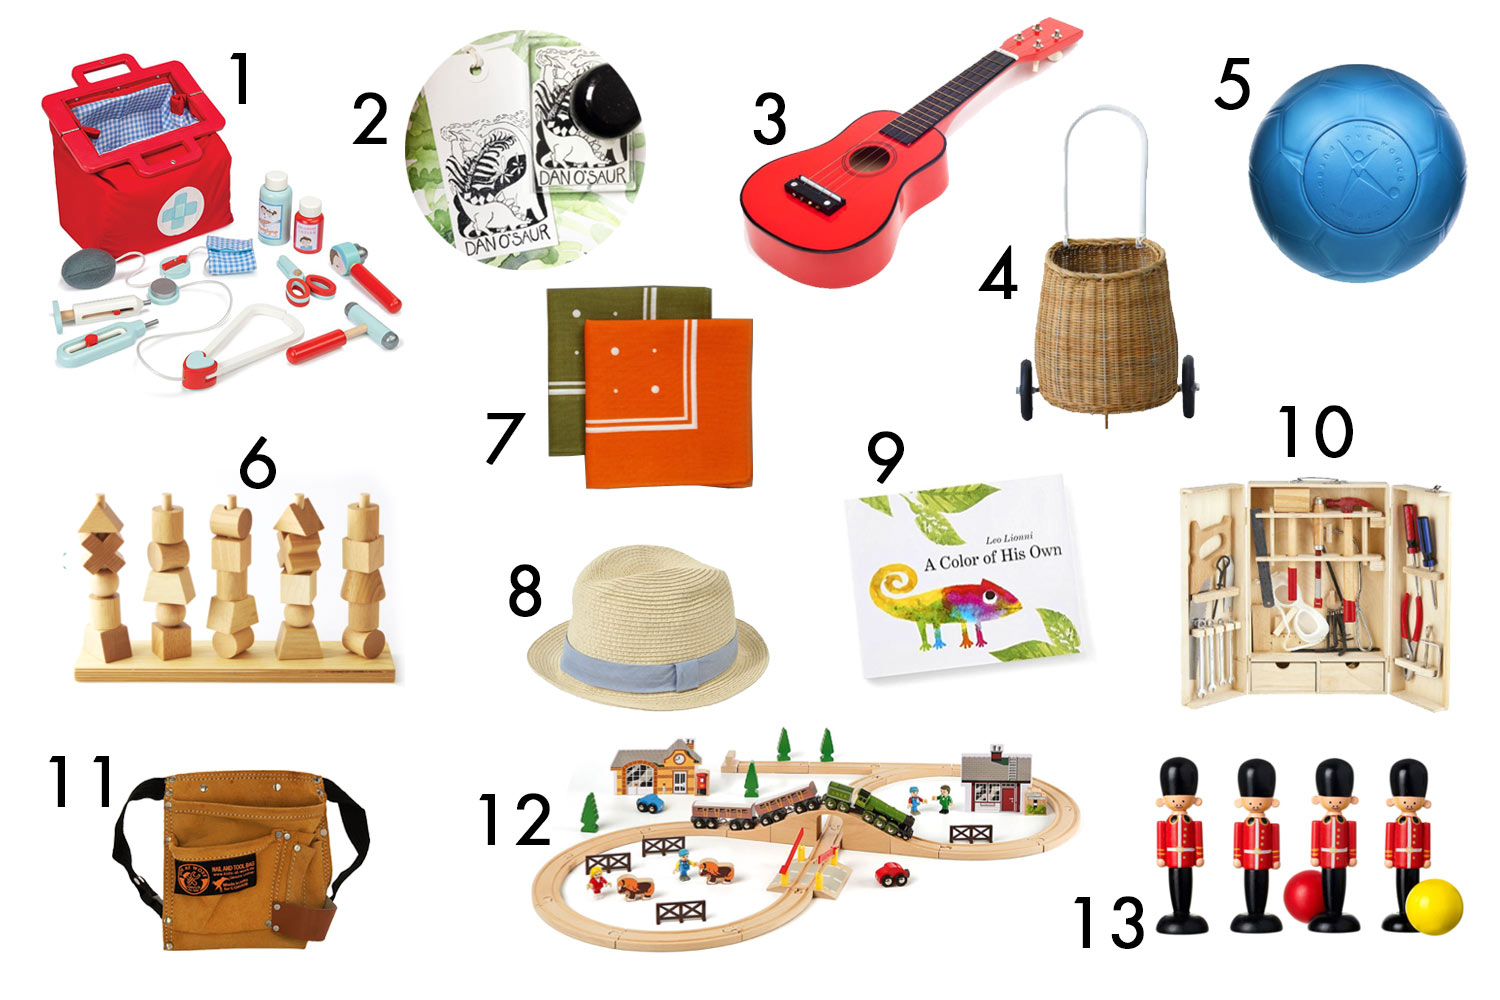 Enjoy These Thirteen Suggestions They Would Be Great For Any Boy Or Girl